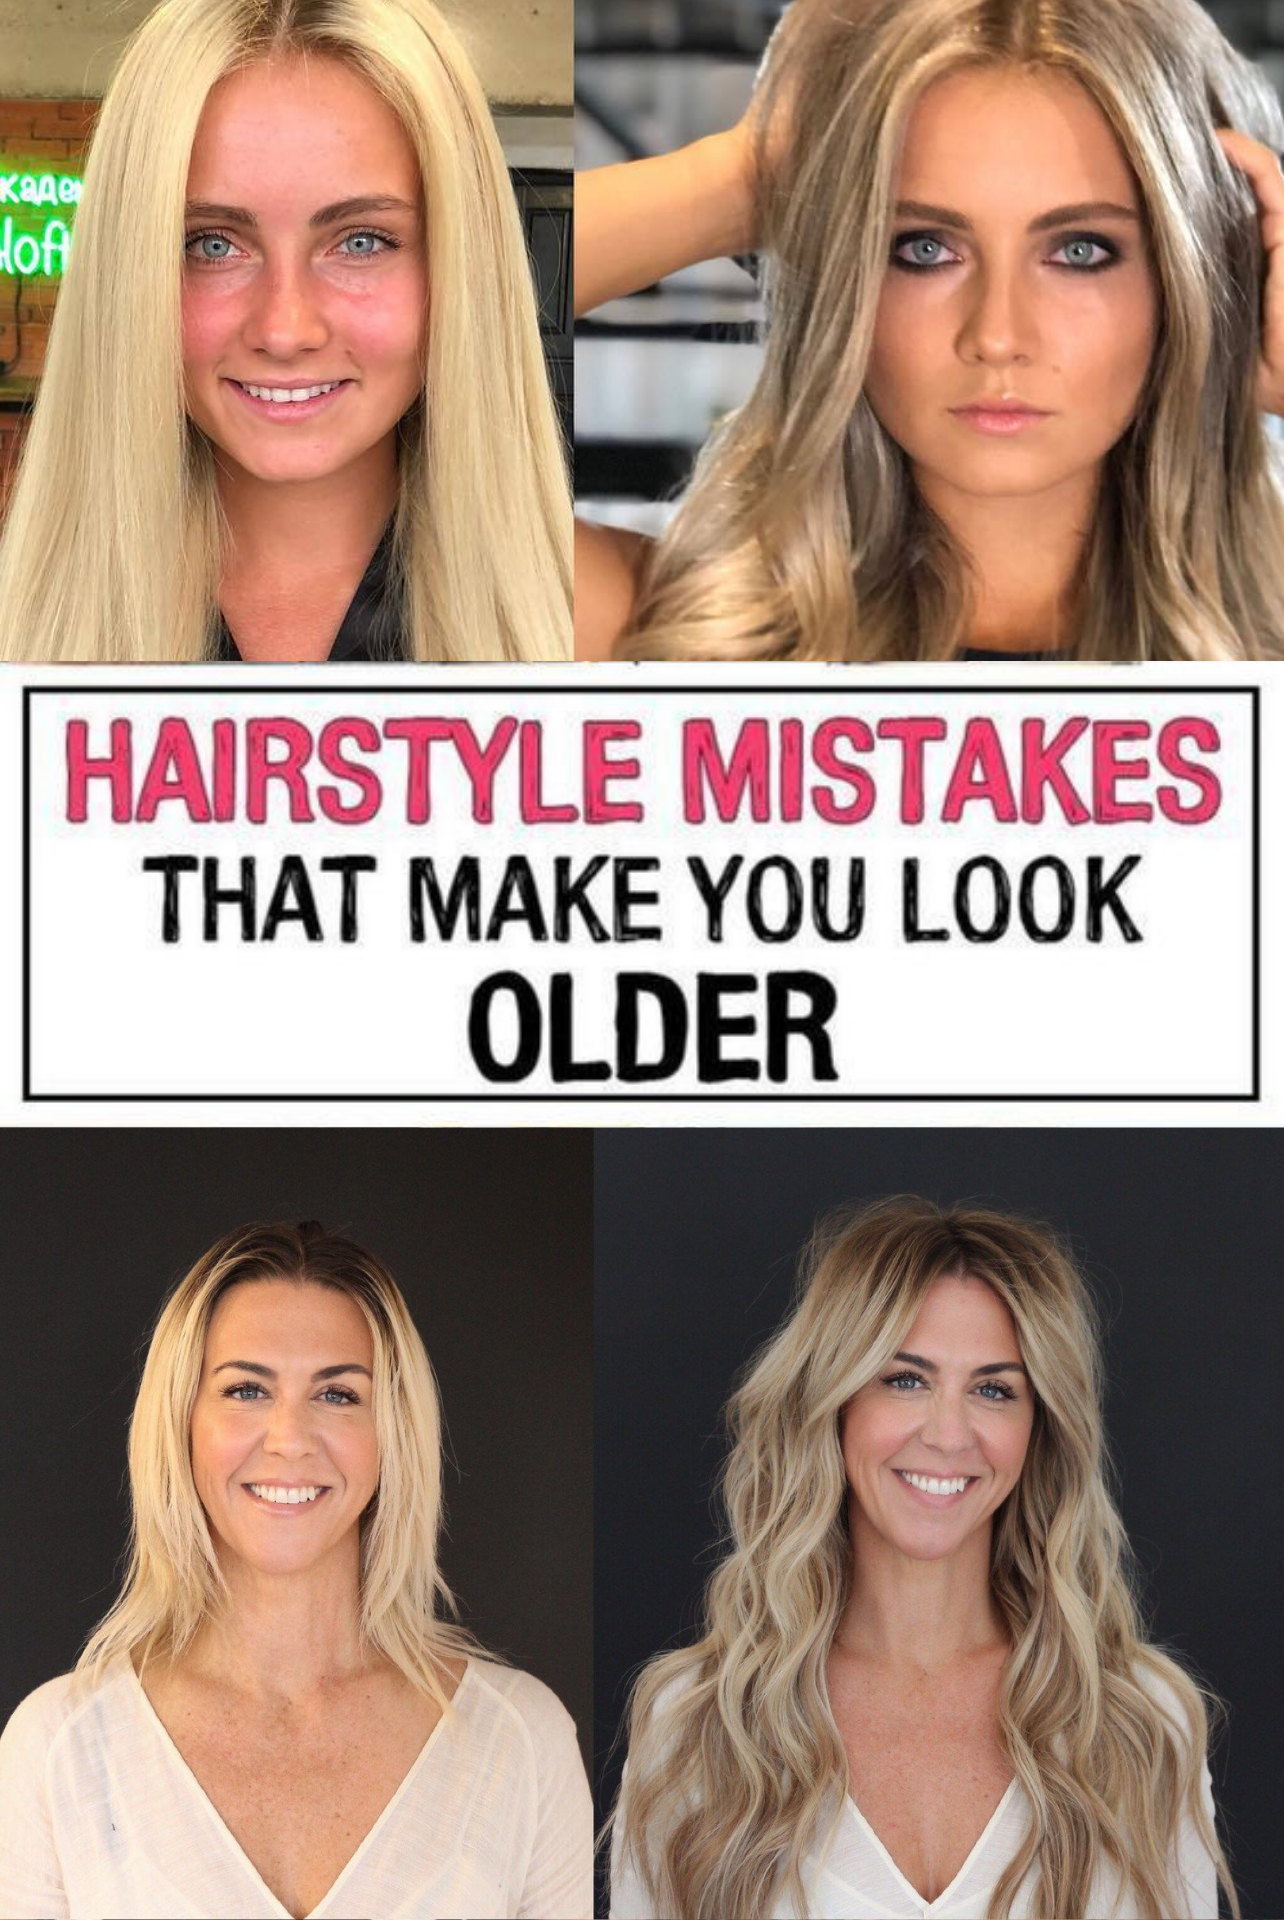 37 Hairstyle Mistakes That Are Aging You In 2020 Hairstyle Mom Hairstyles Hair Mistakes